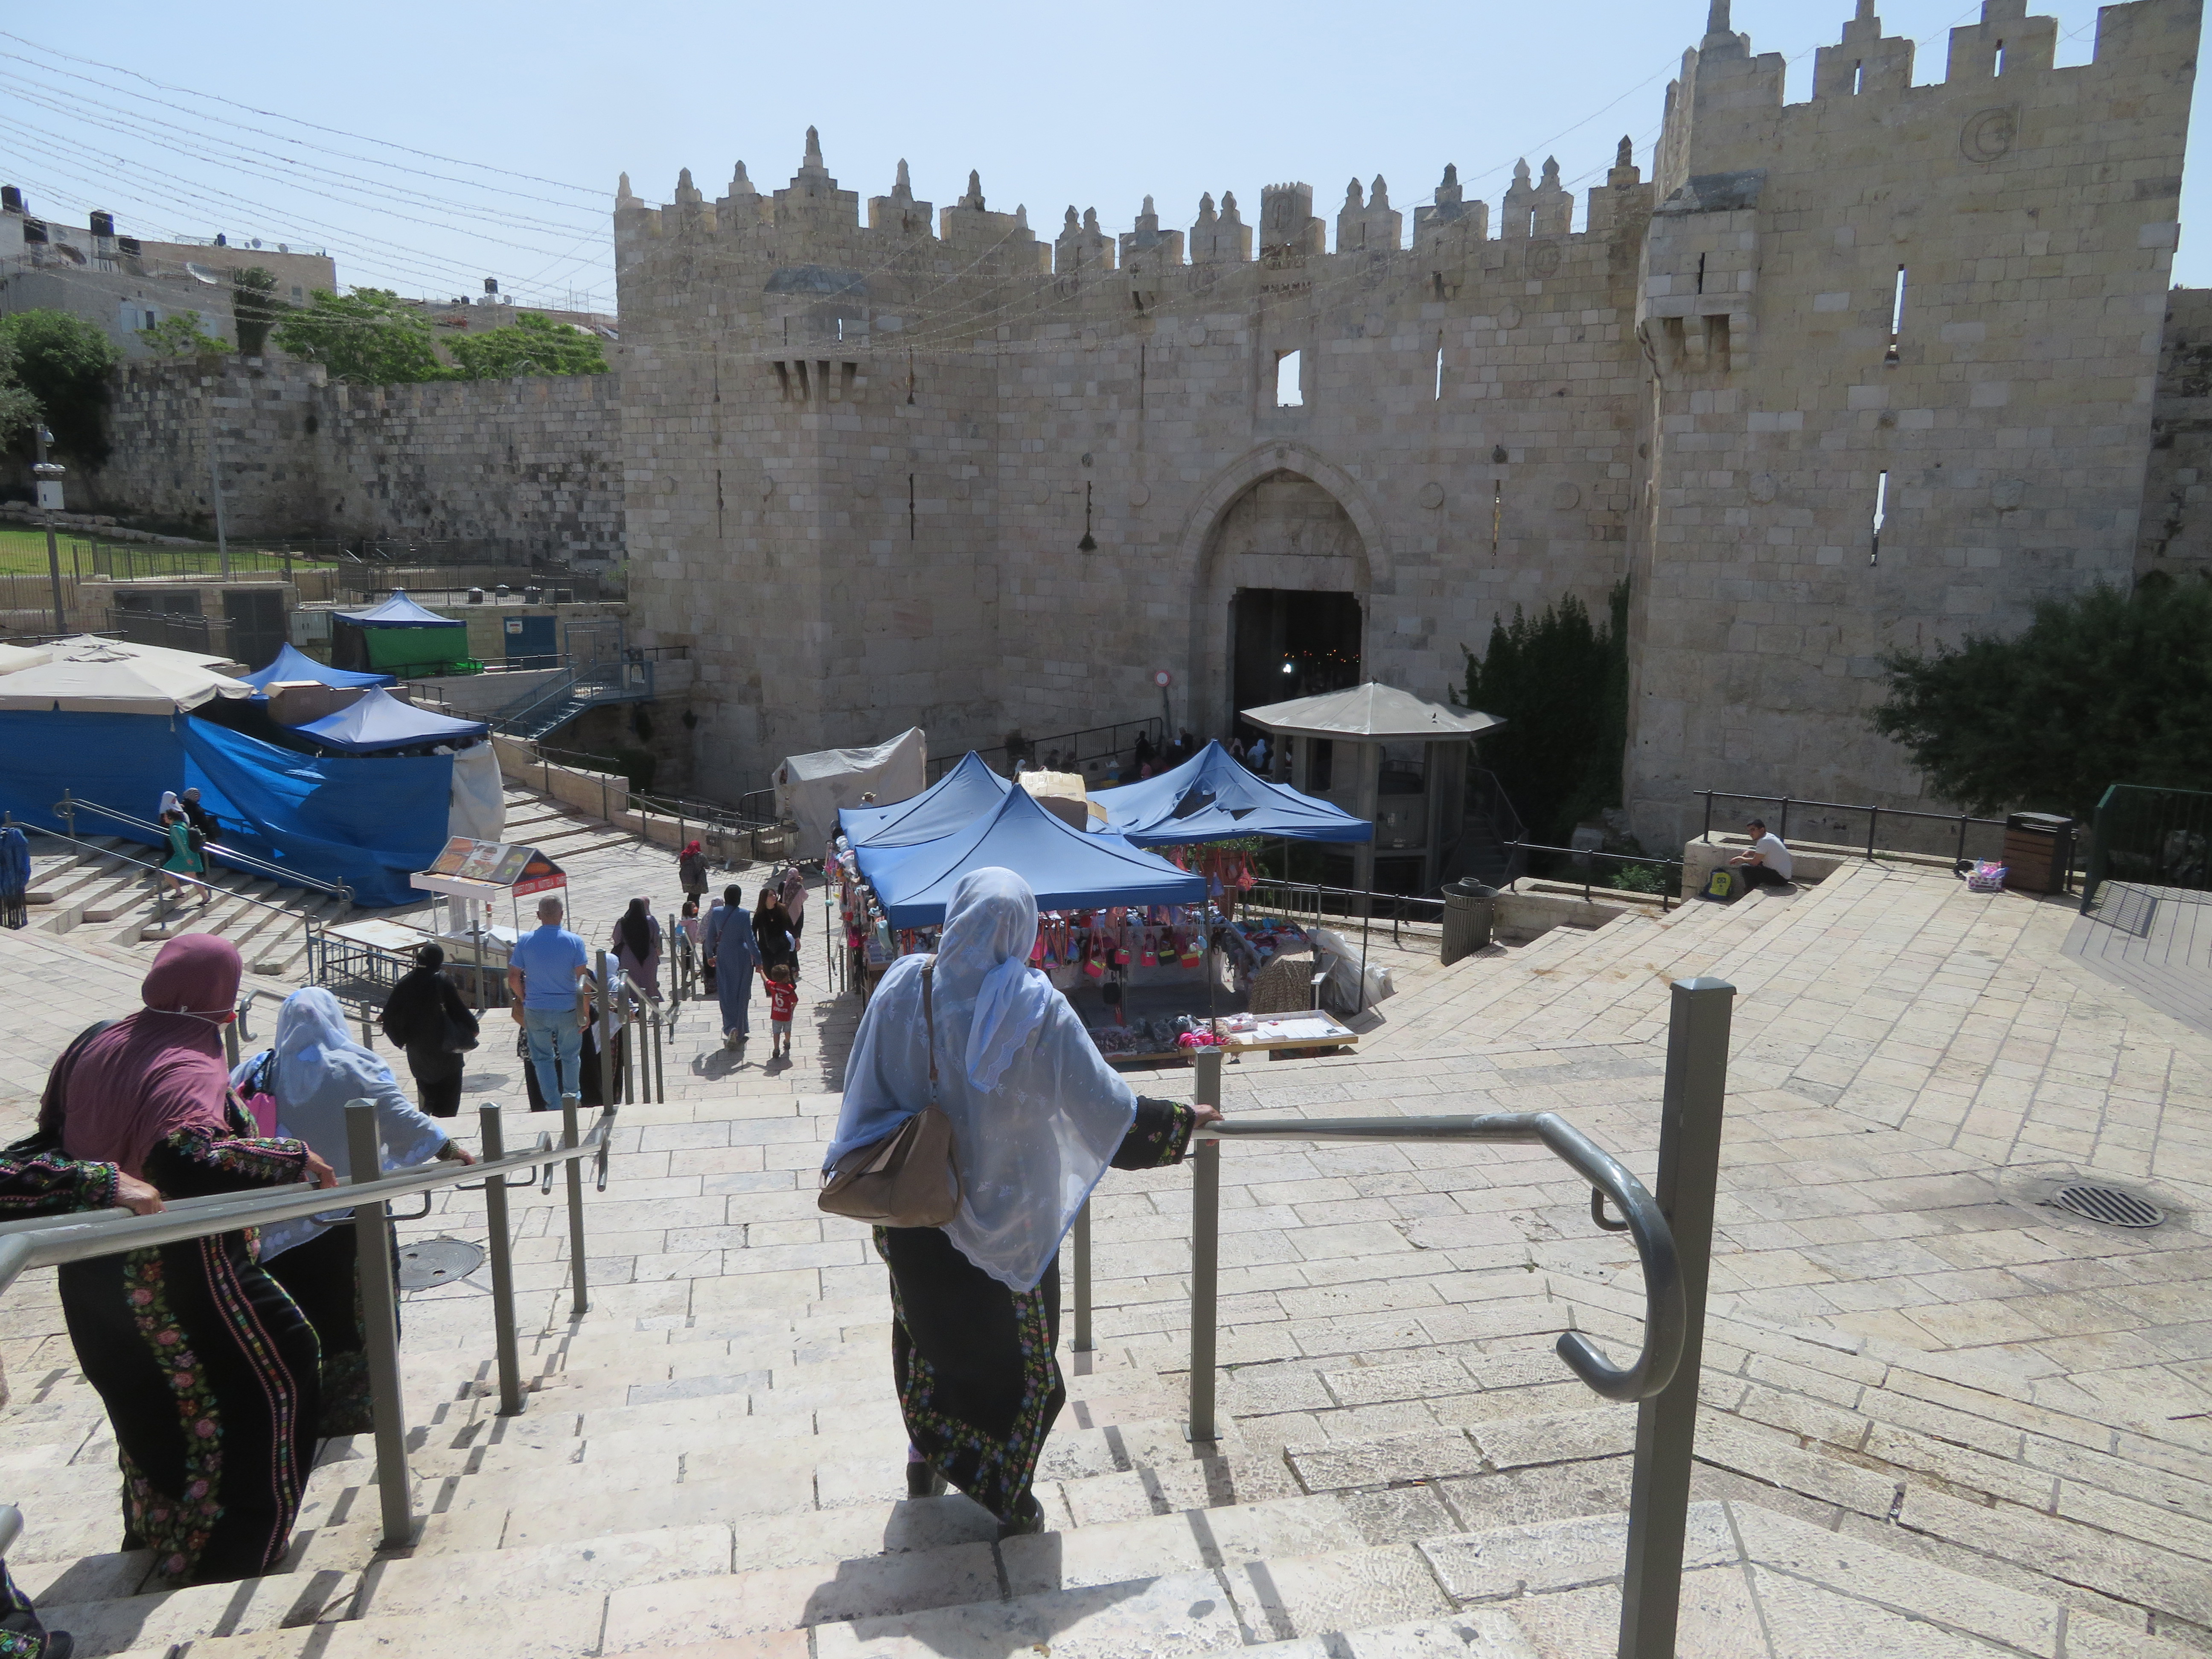 Muslim women descend the steps at Damascus Gate on their way into the Old City of Jerusalem during Ramadan.